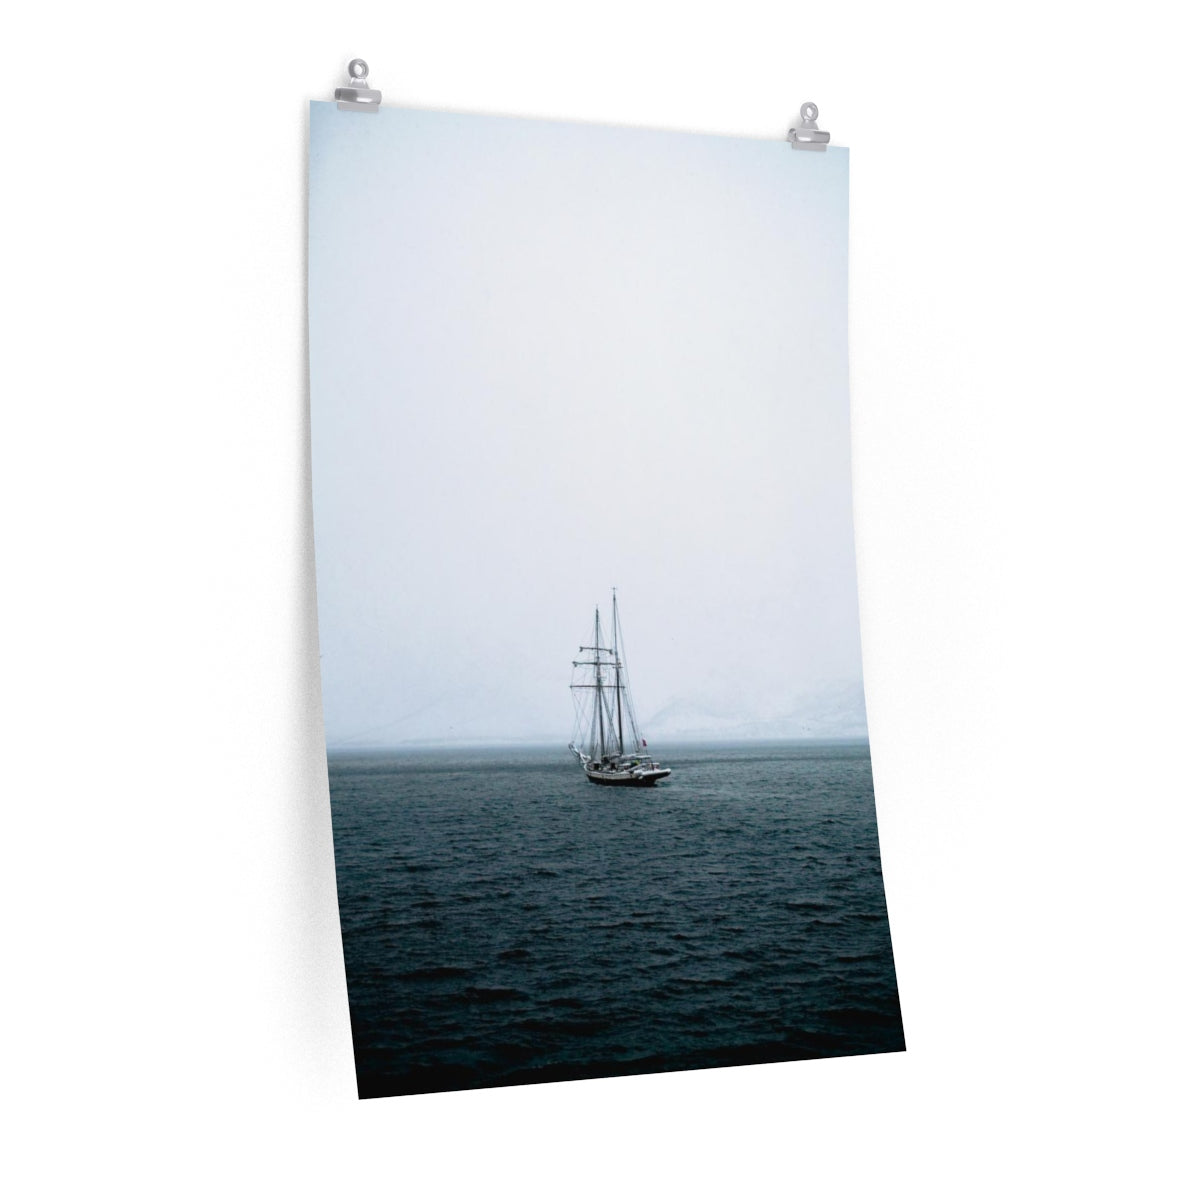 Norwegian Pirate Ship - Vertical Print